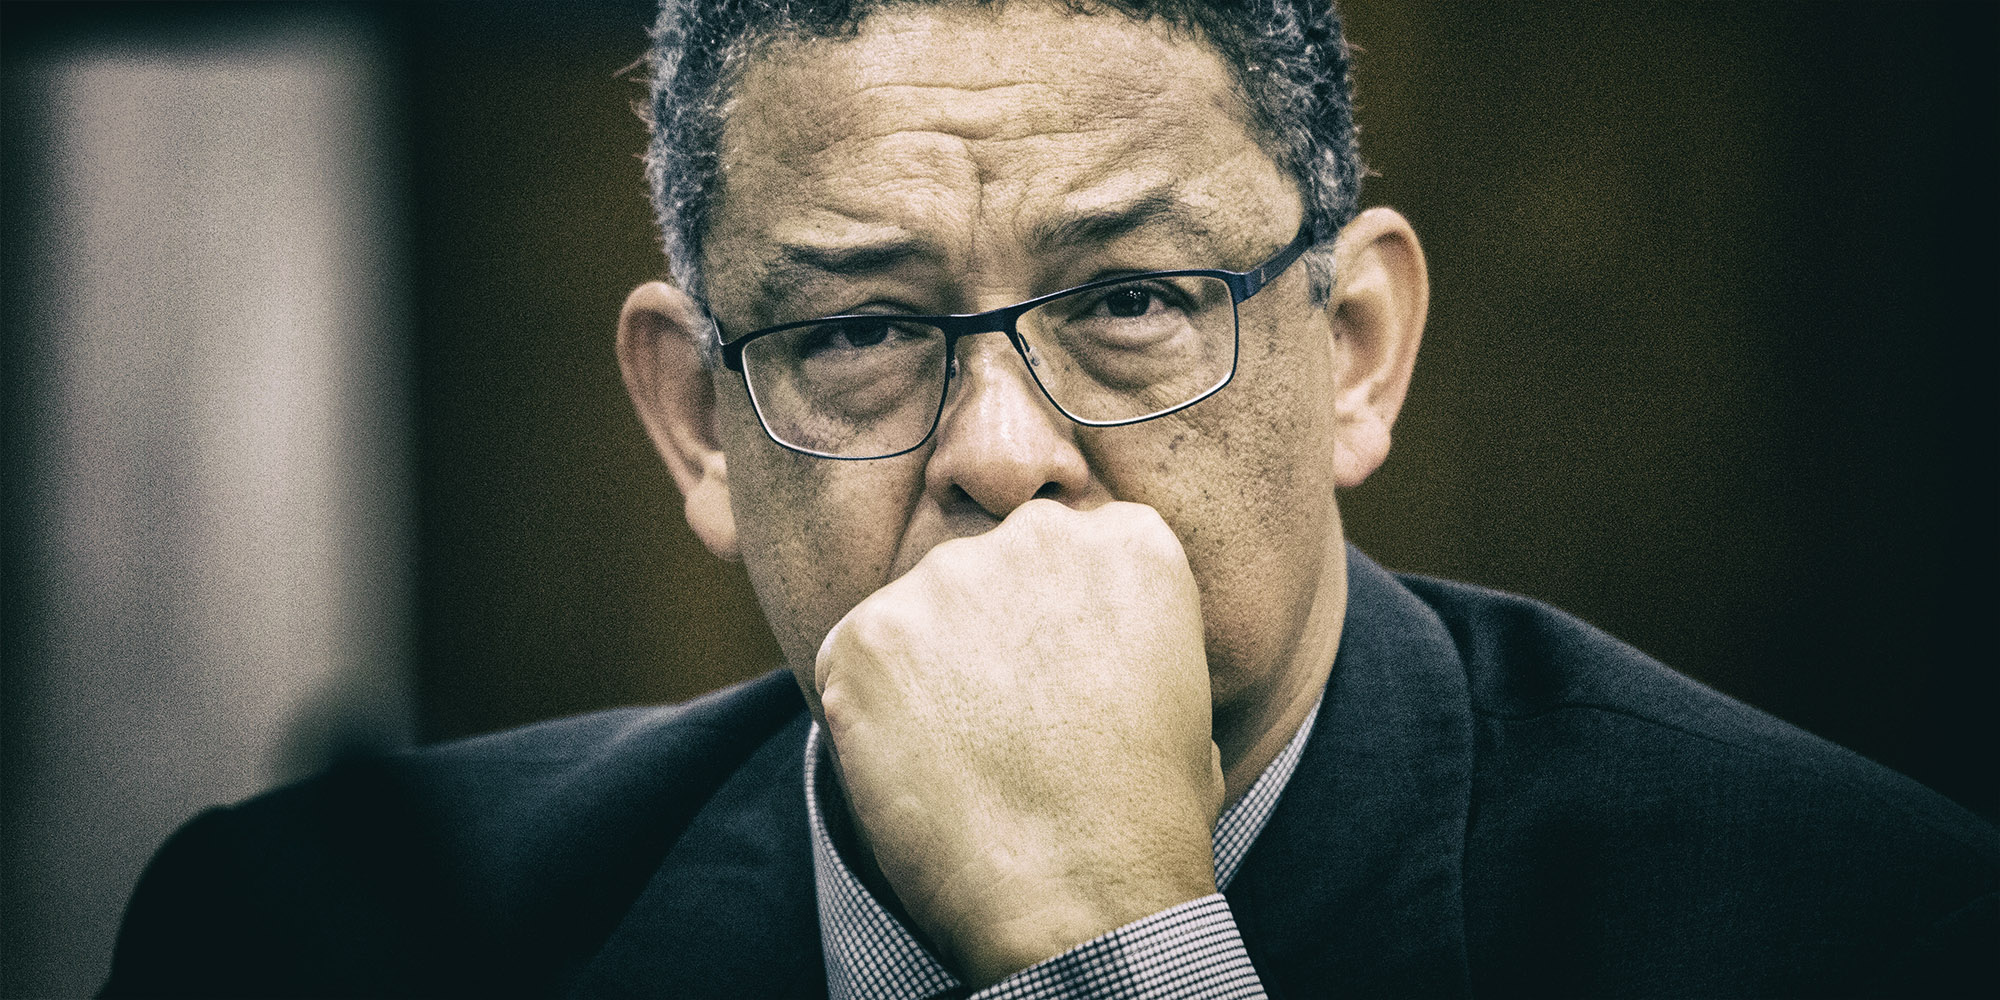 POLICE WATCHDOG REPORT: IPID cover up exposé: Viewfinder responds to Robert McBride